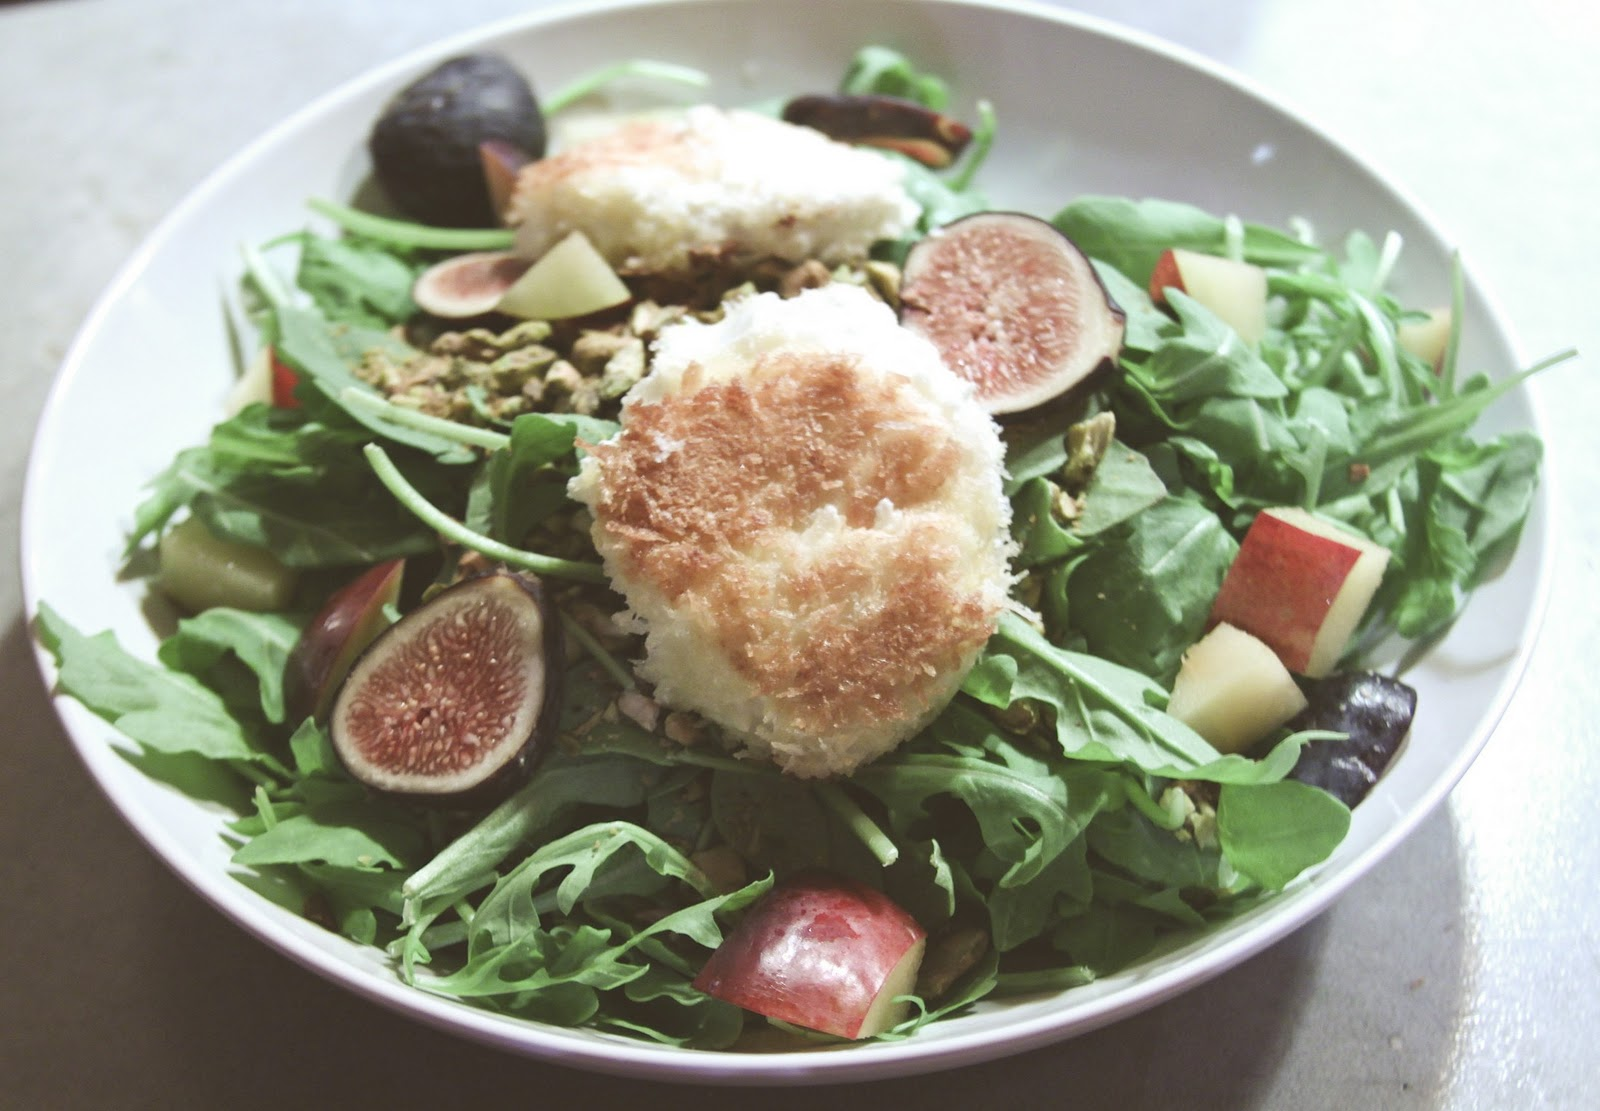 à la Alison: Panko-Fried Goat Cheese Salad with Figs